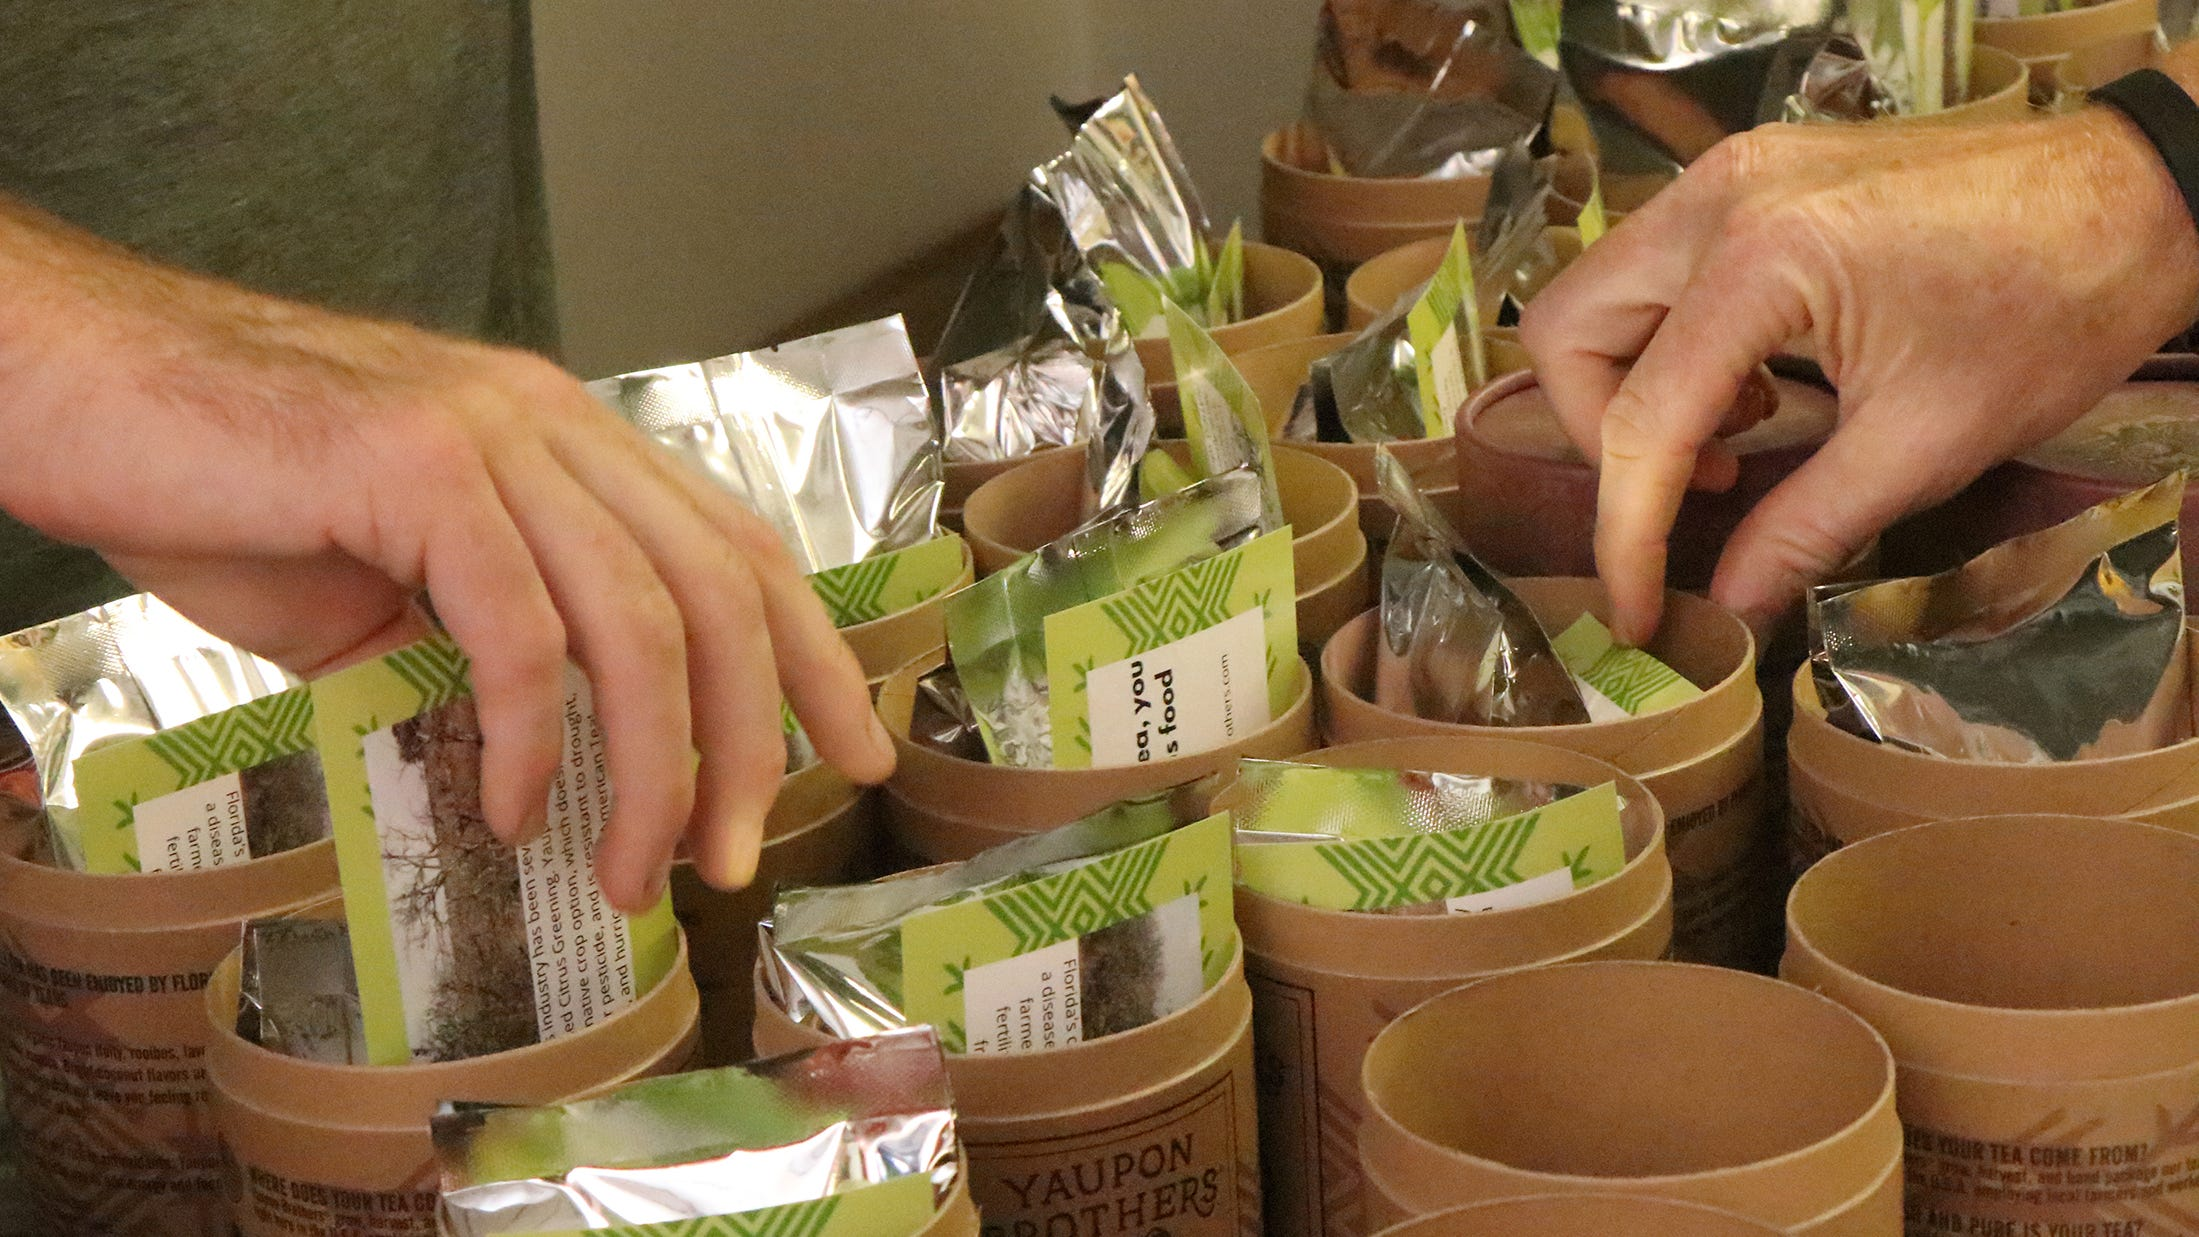 Yaupon Brothers American Tea Company staff fill containers with their tea in Edgewater on Tuesday, Sept. 29, 2020. Since the COVID-19 pandemic, a large portion of the company's sales are online.